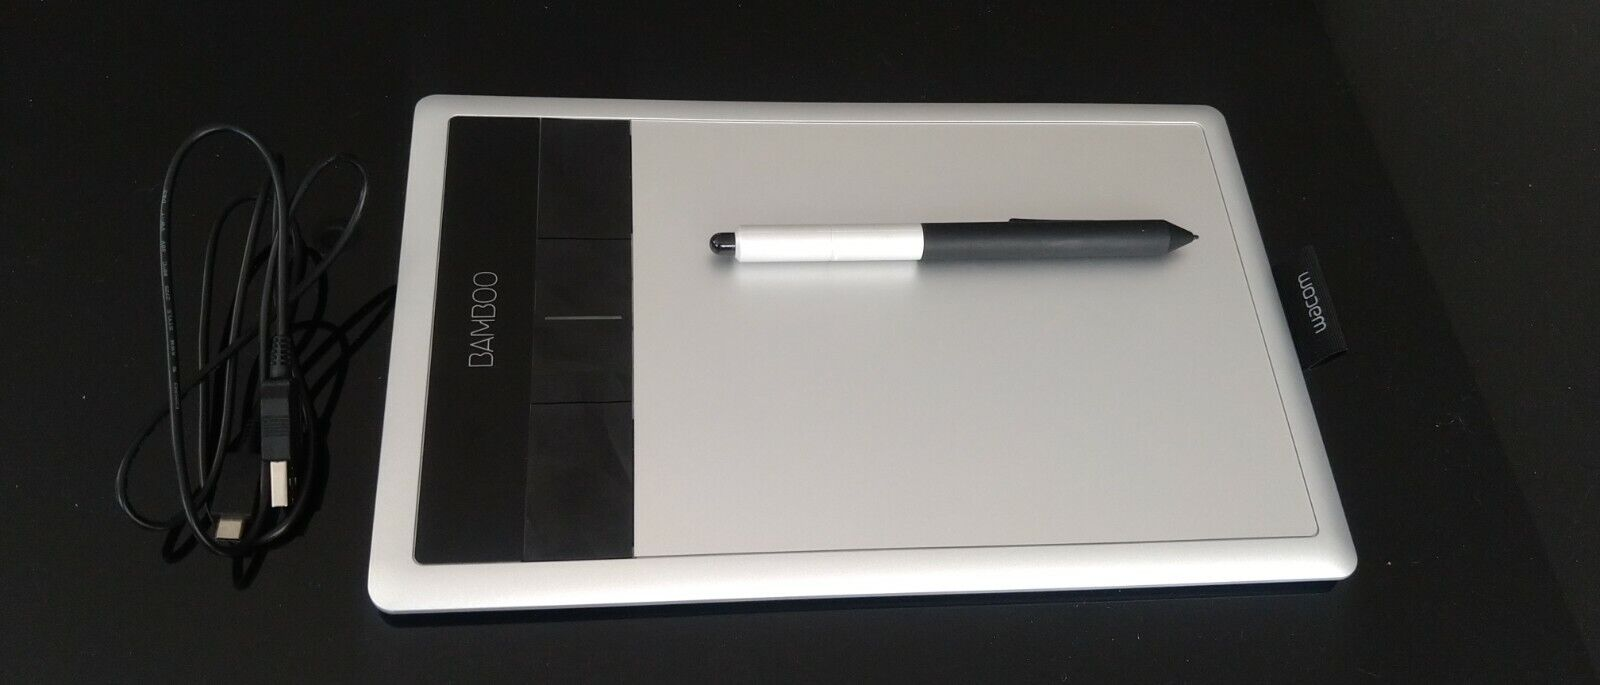 Tablette graphique bamboo cth 470 + cable + stylet